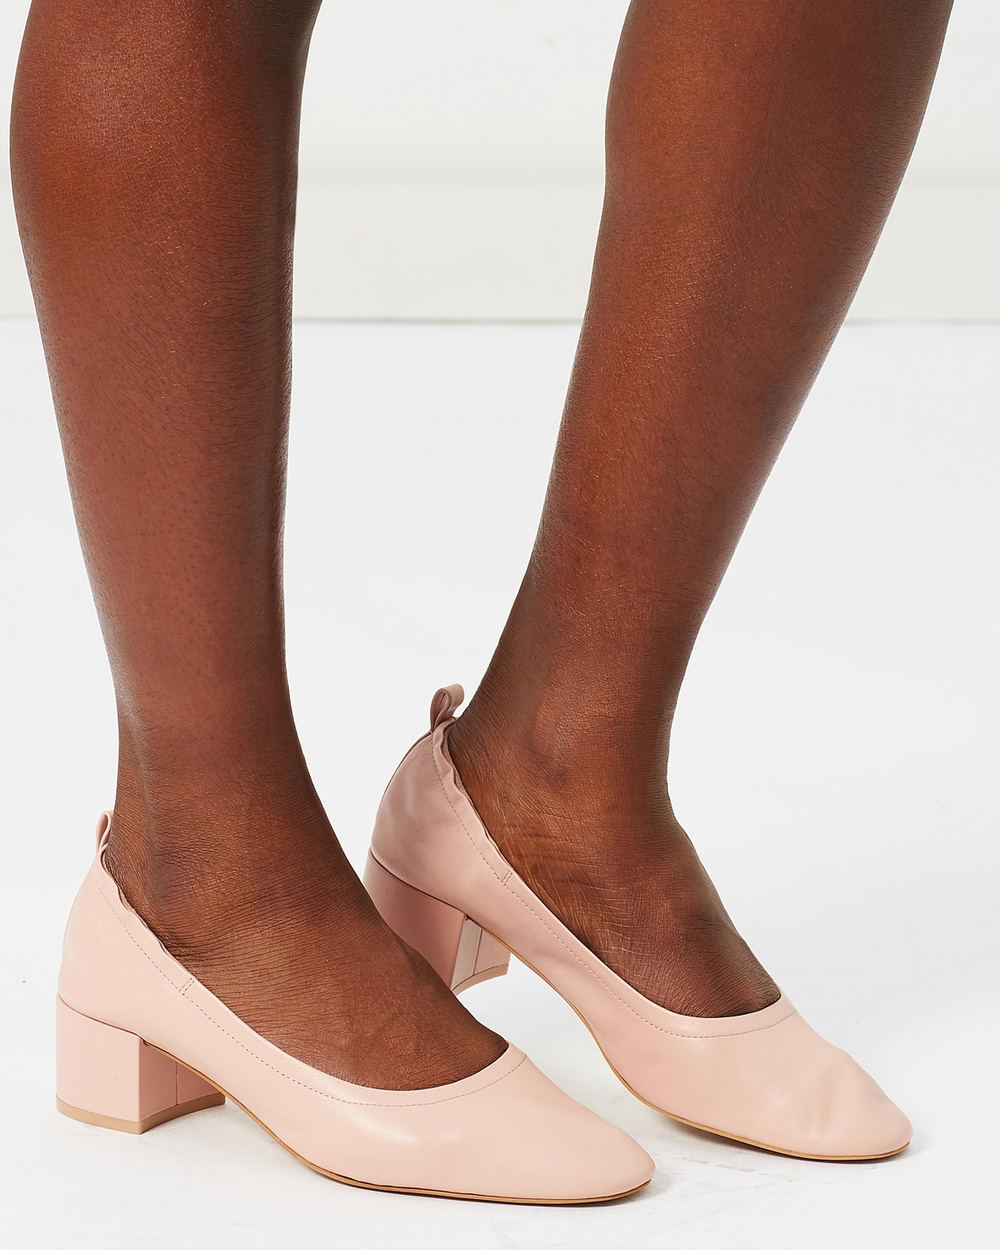 Shoes of Prey ICONIC EXCLUSIVE Vara Leather Pumps All Pumps Blush Leather ICONIC EXCLUSIVE Vara Leather Pumps